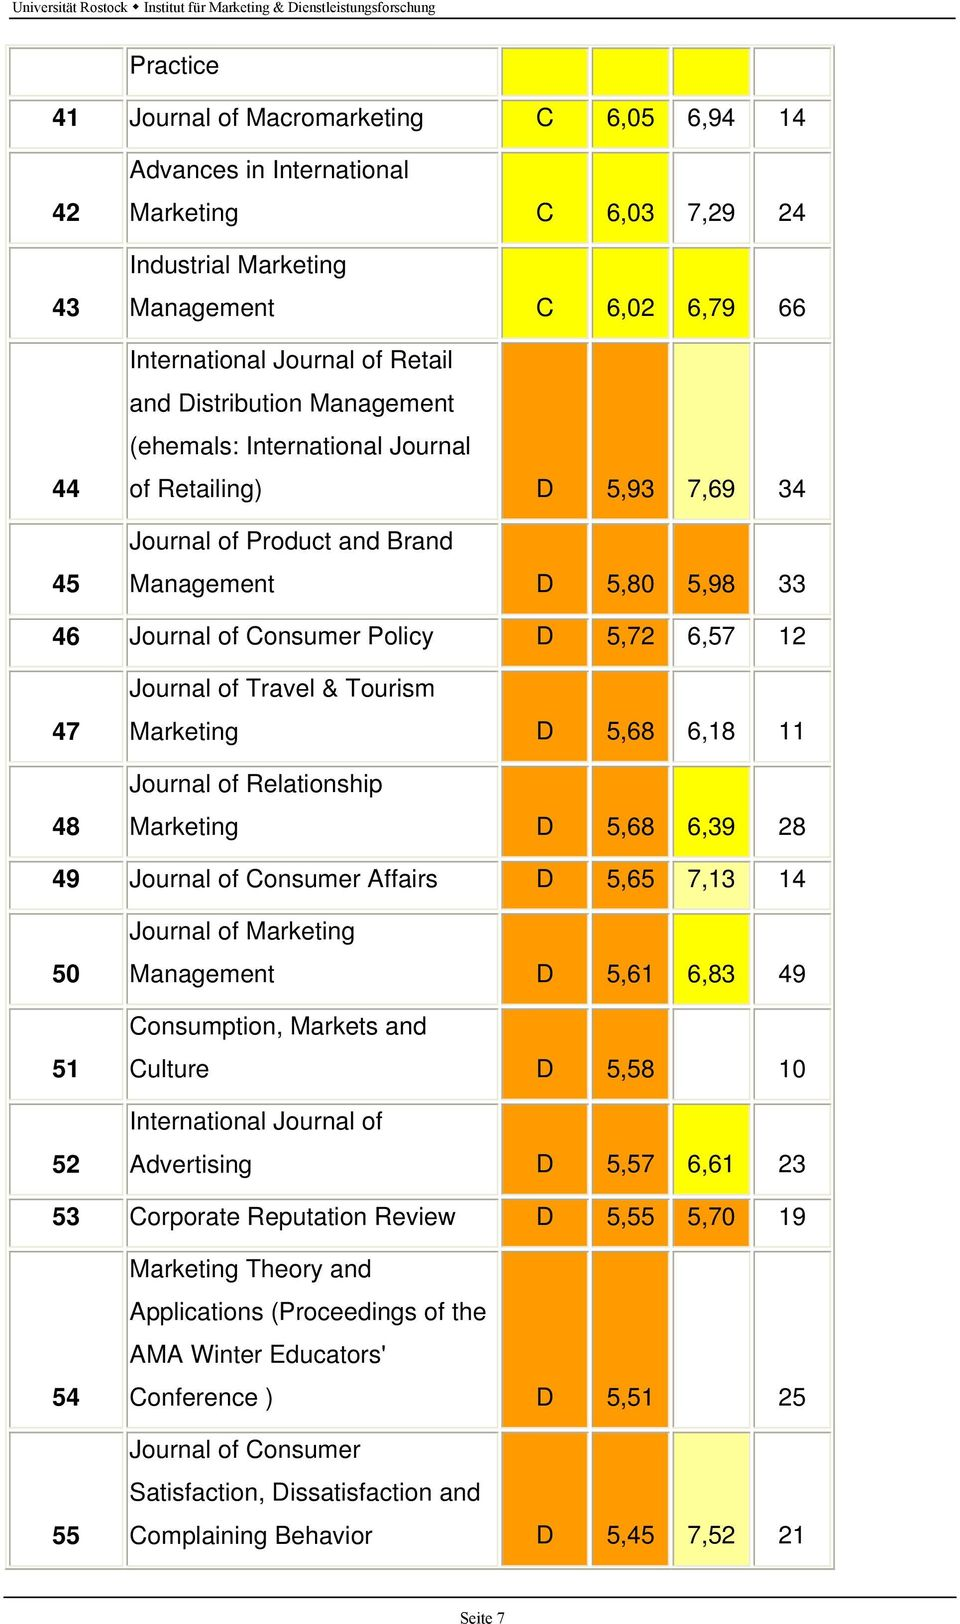 of Travel & Tourism Marketing D 5,68 6,18 11 Journal of Relationship Marketing D 5,68 6,39 28 49 Journal of Consumer Affairs D 5,65 7,13 14 50 51 52 Journal of Marketing Management D 5,61 6,83 49